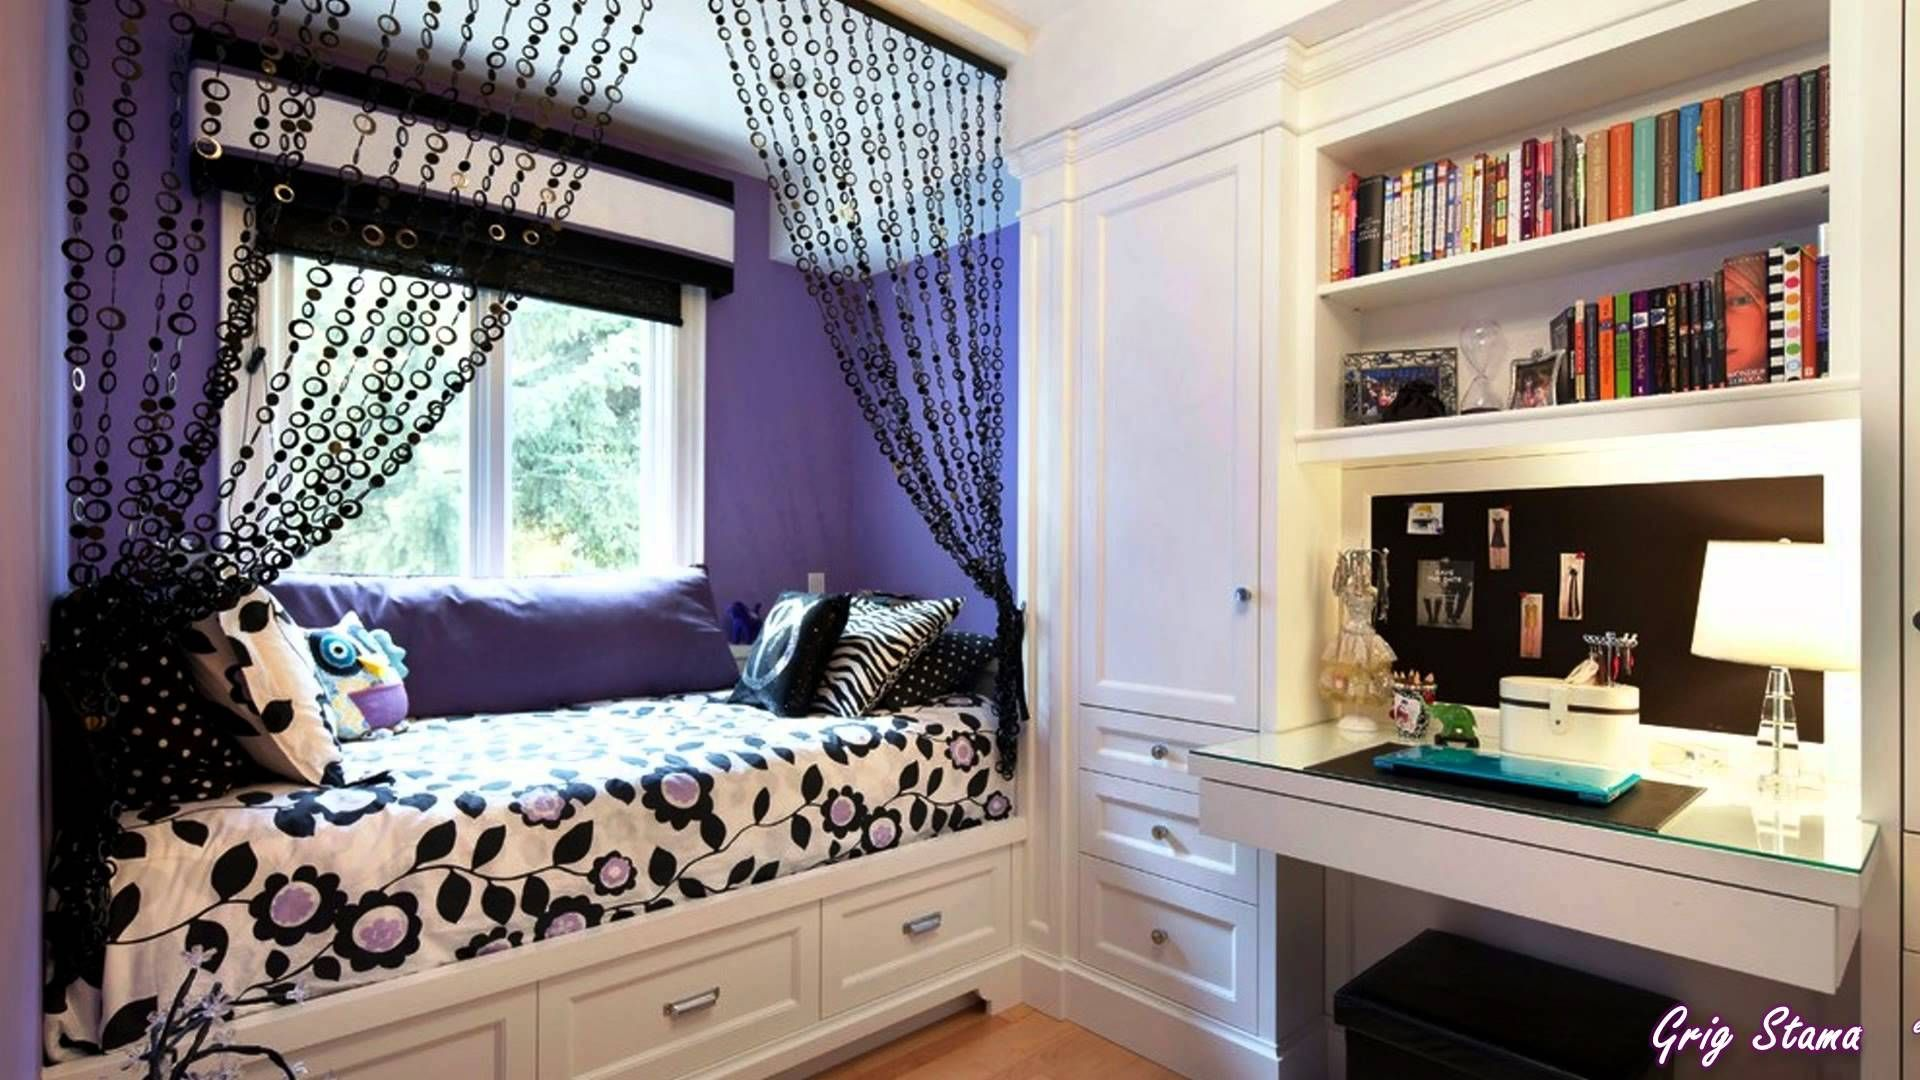 Bedroom design ideas for teenage girls tumblr - Bedroom Ideas For Teenage Girls Tumblr Simple Cosmoplast Biz